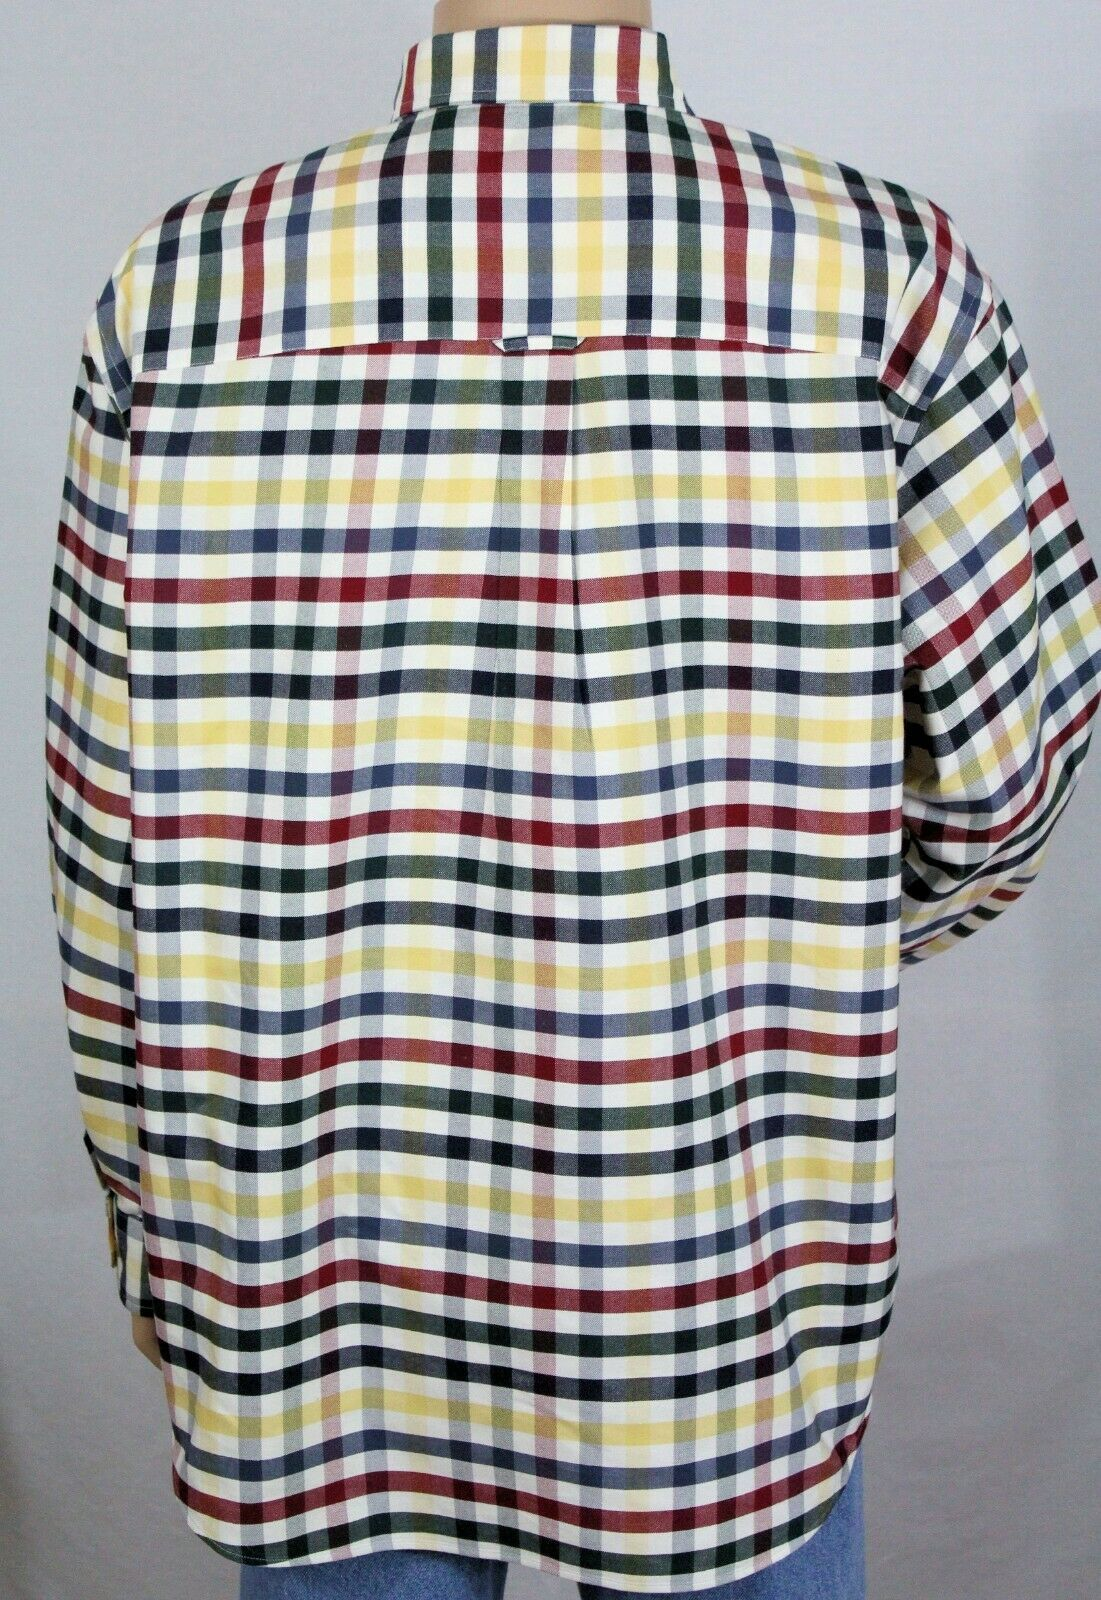 ROUNDTREE & YORKE Men's XL Easy Care Oxford Button Down LS Shirt w/2 Pockets EUC